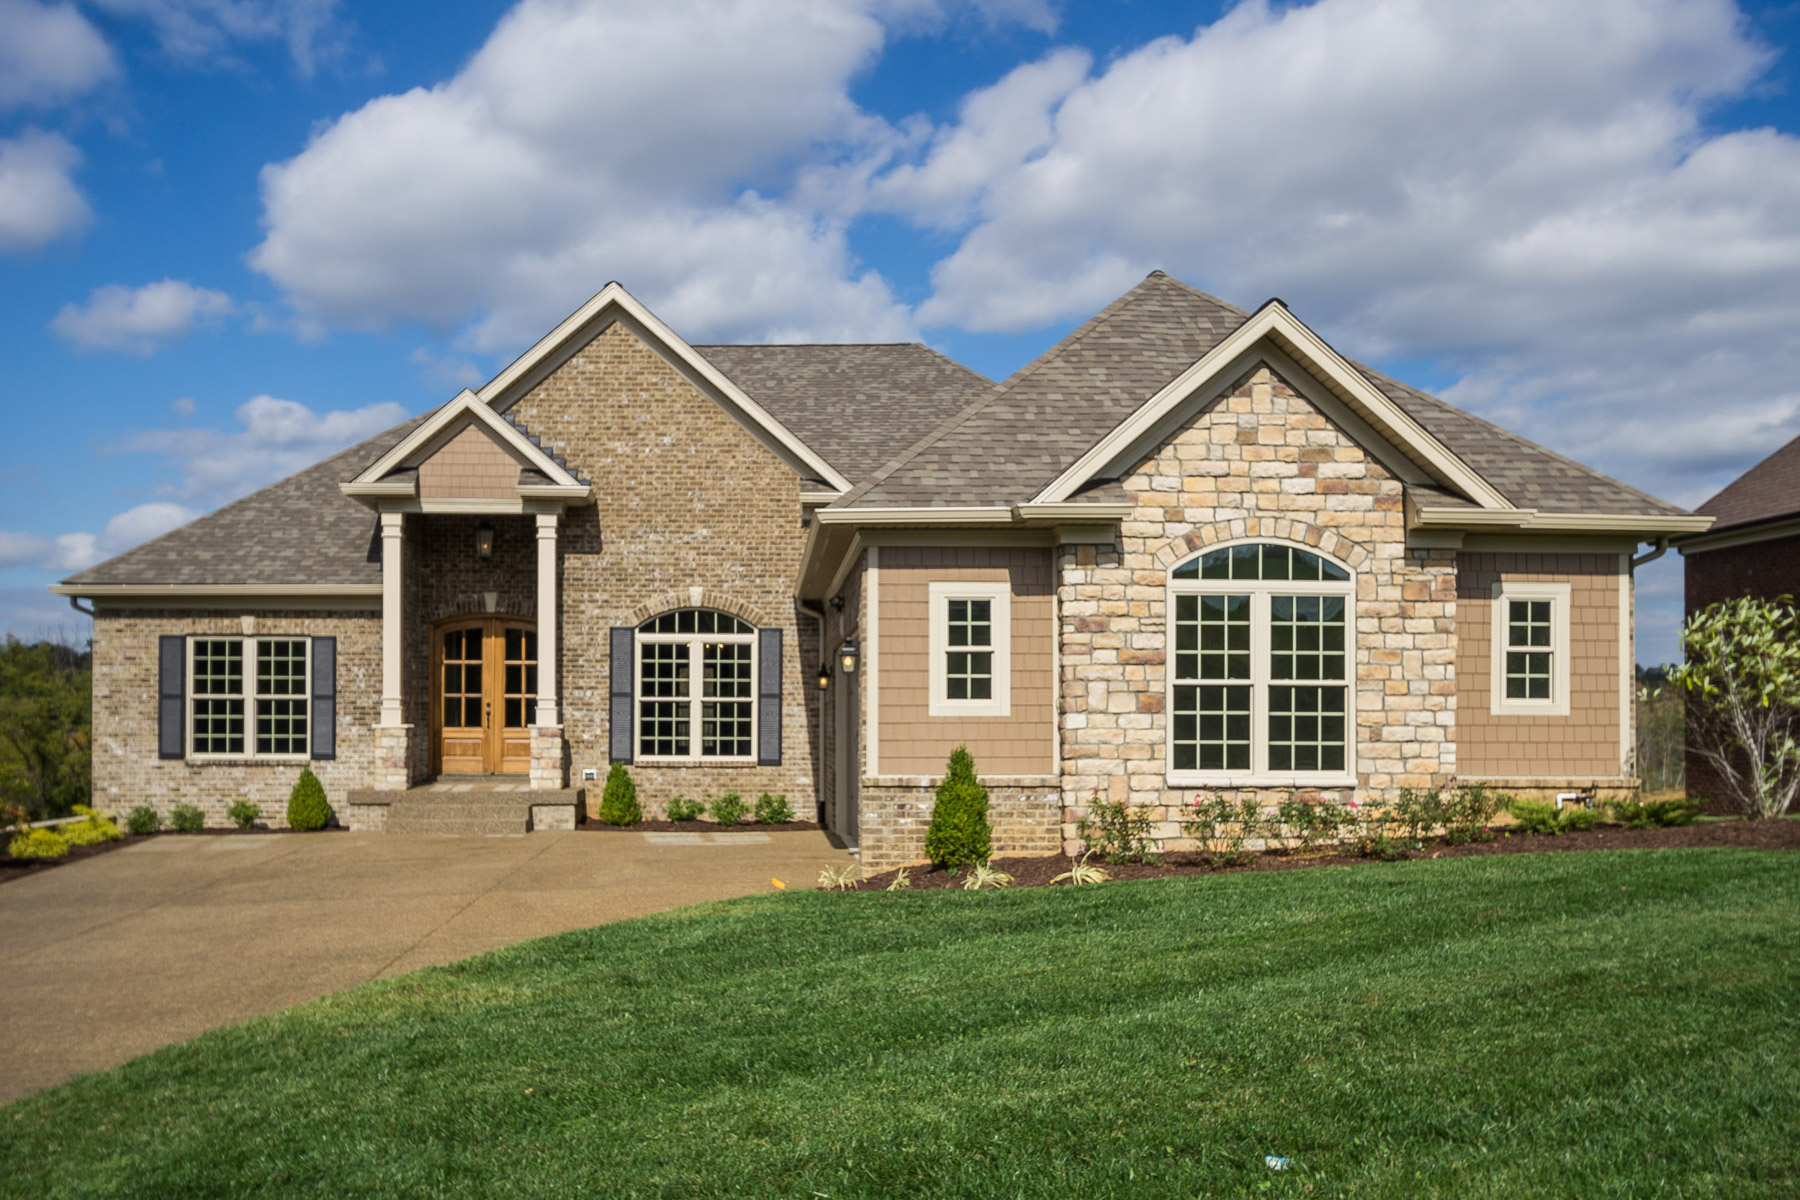 Single Family Home for Sale at 5608 Morningside Drive Crestwood, Kentucky 40014 United States